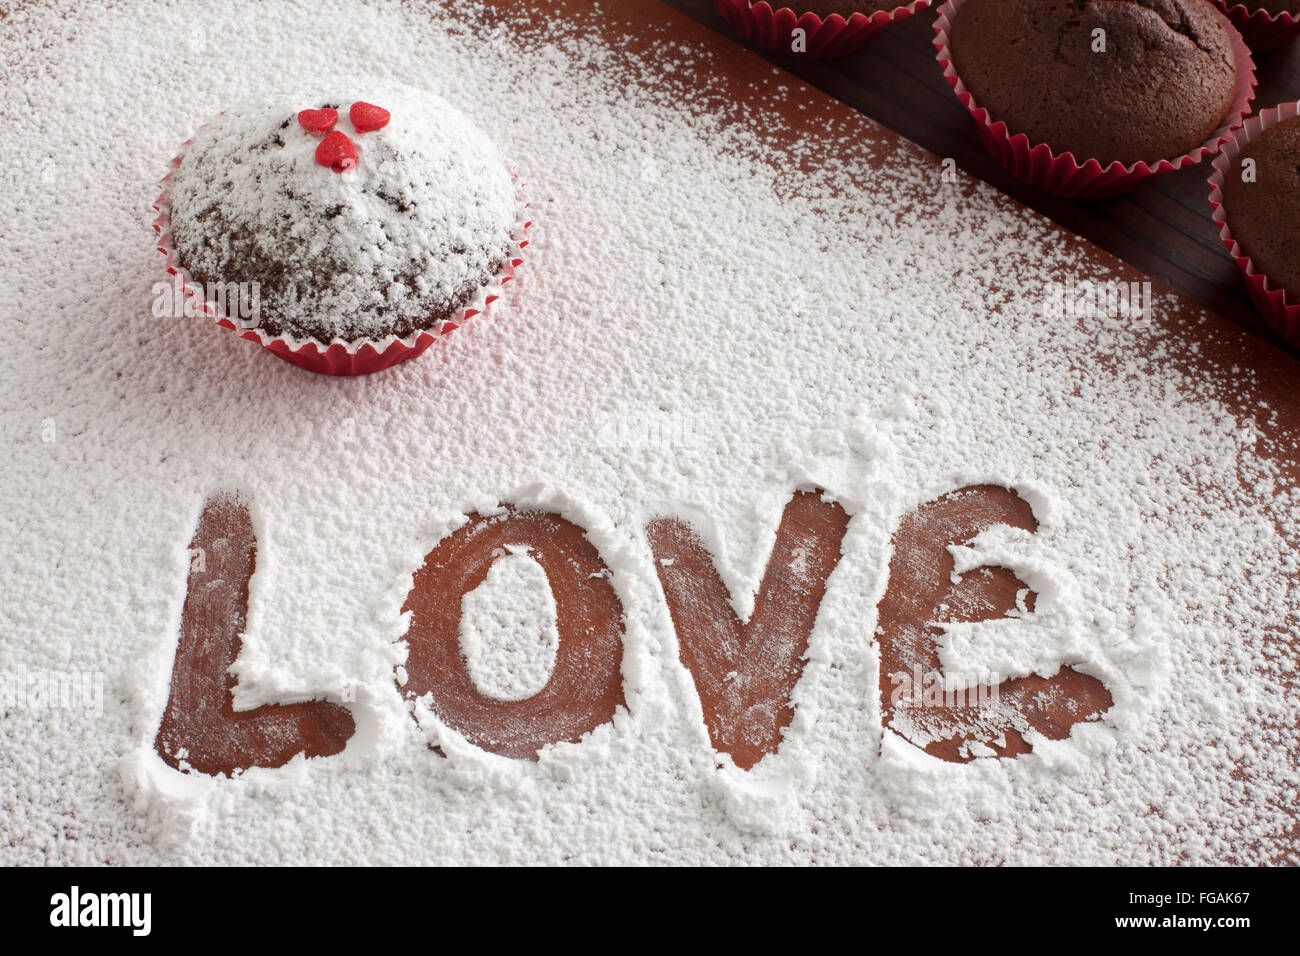 High Angle View Of Text In Powdered Sugar By Muffin On Cutting Board - Stock Image